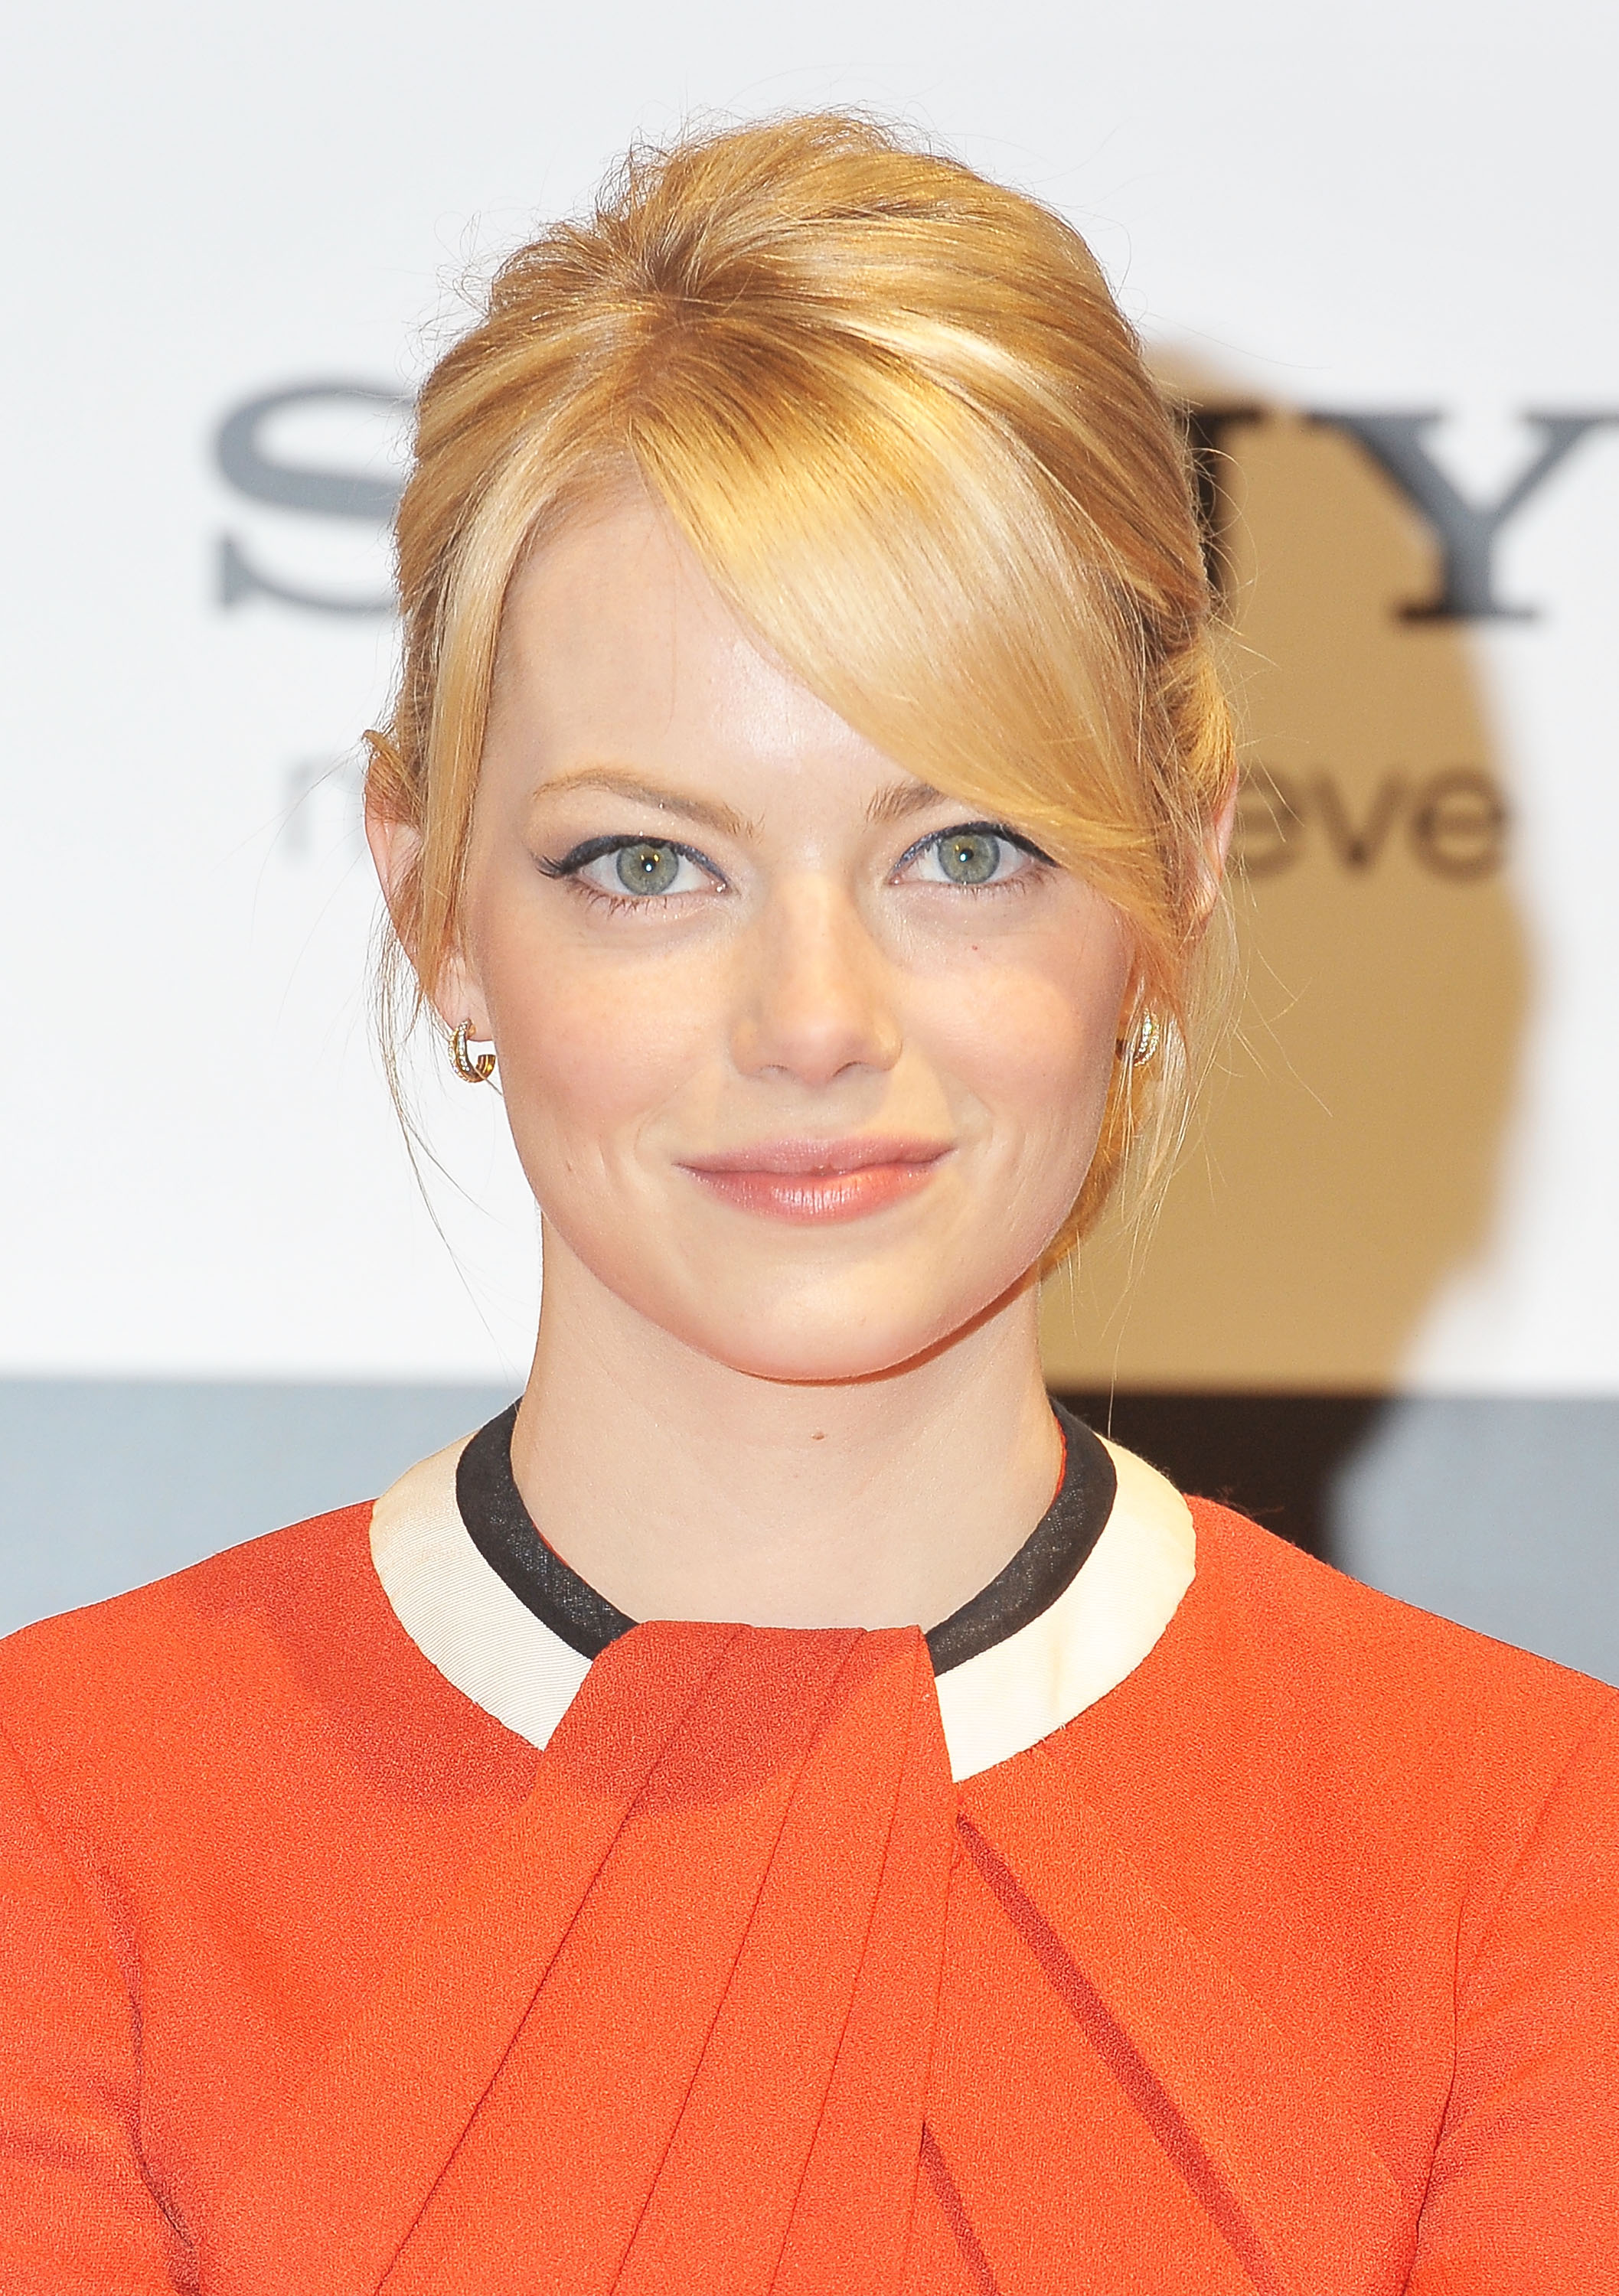 Emma Stone wore an orange dress for the press conference ... Andrew Garfield